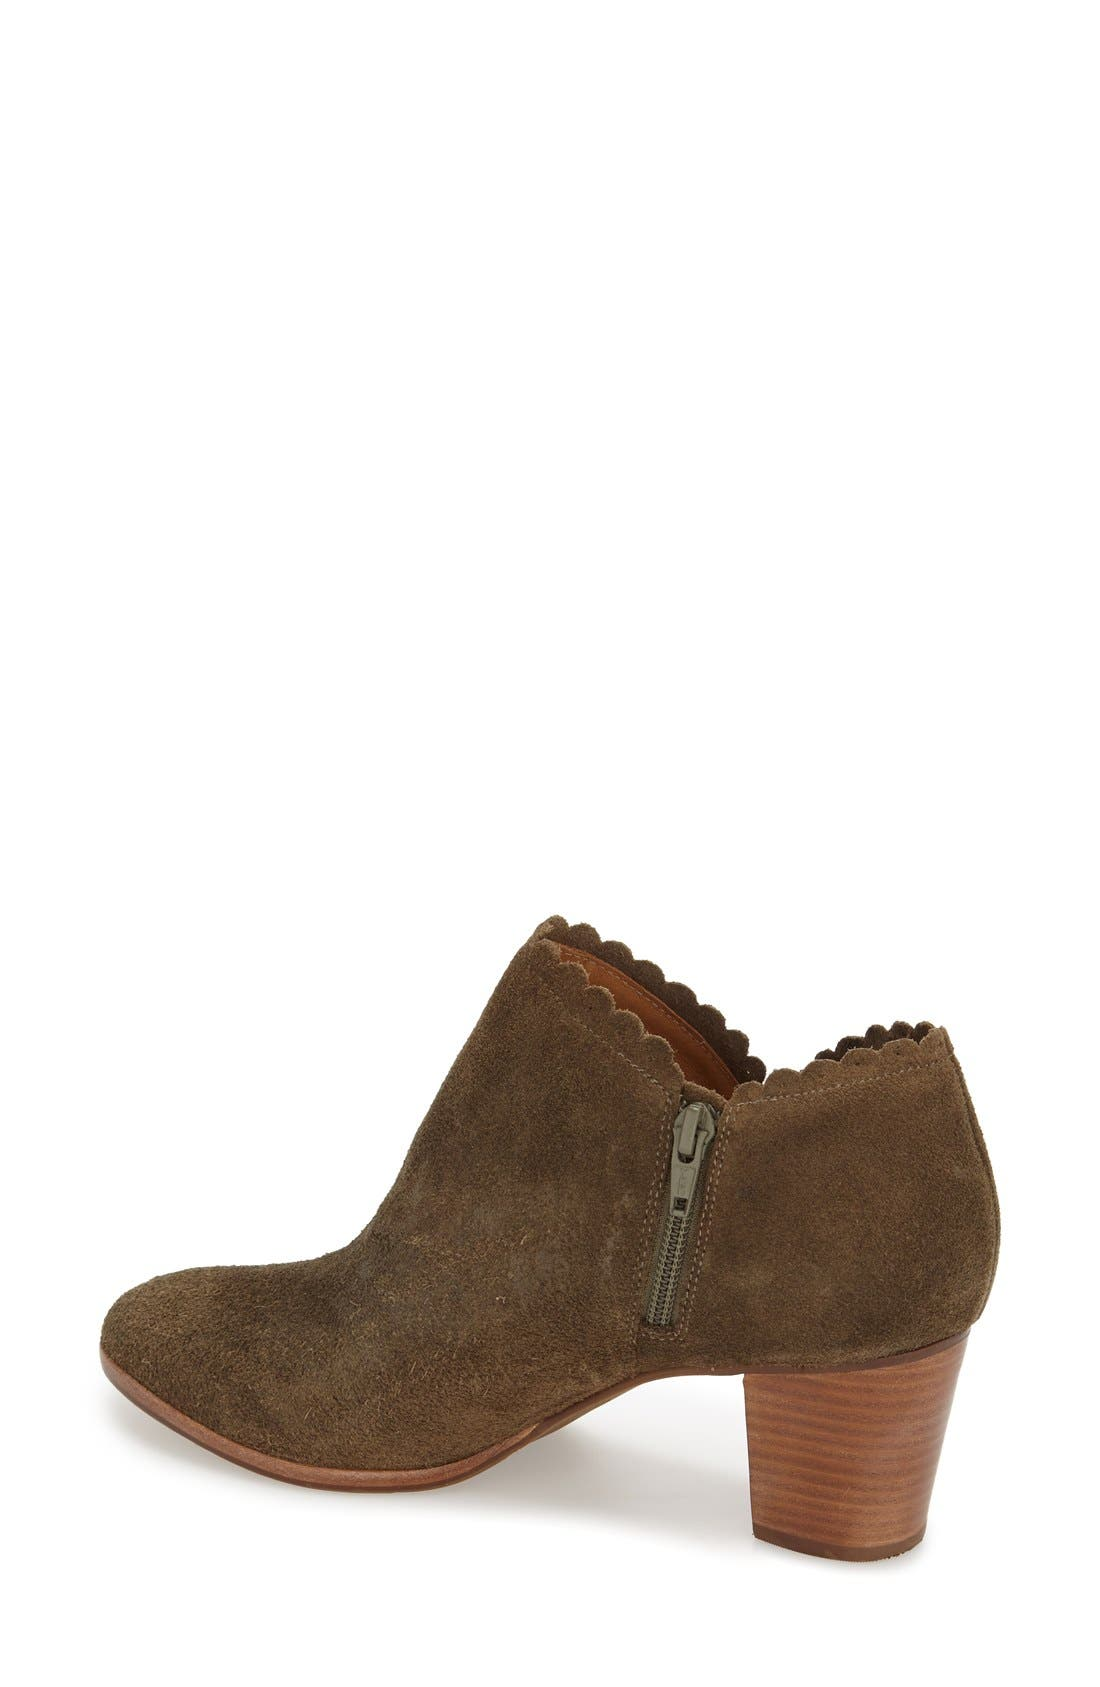 'Marianne' Bootie,                             Alternate thumbnail 2, color,                             Olive Suede